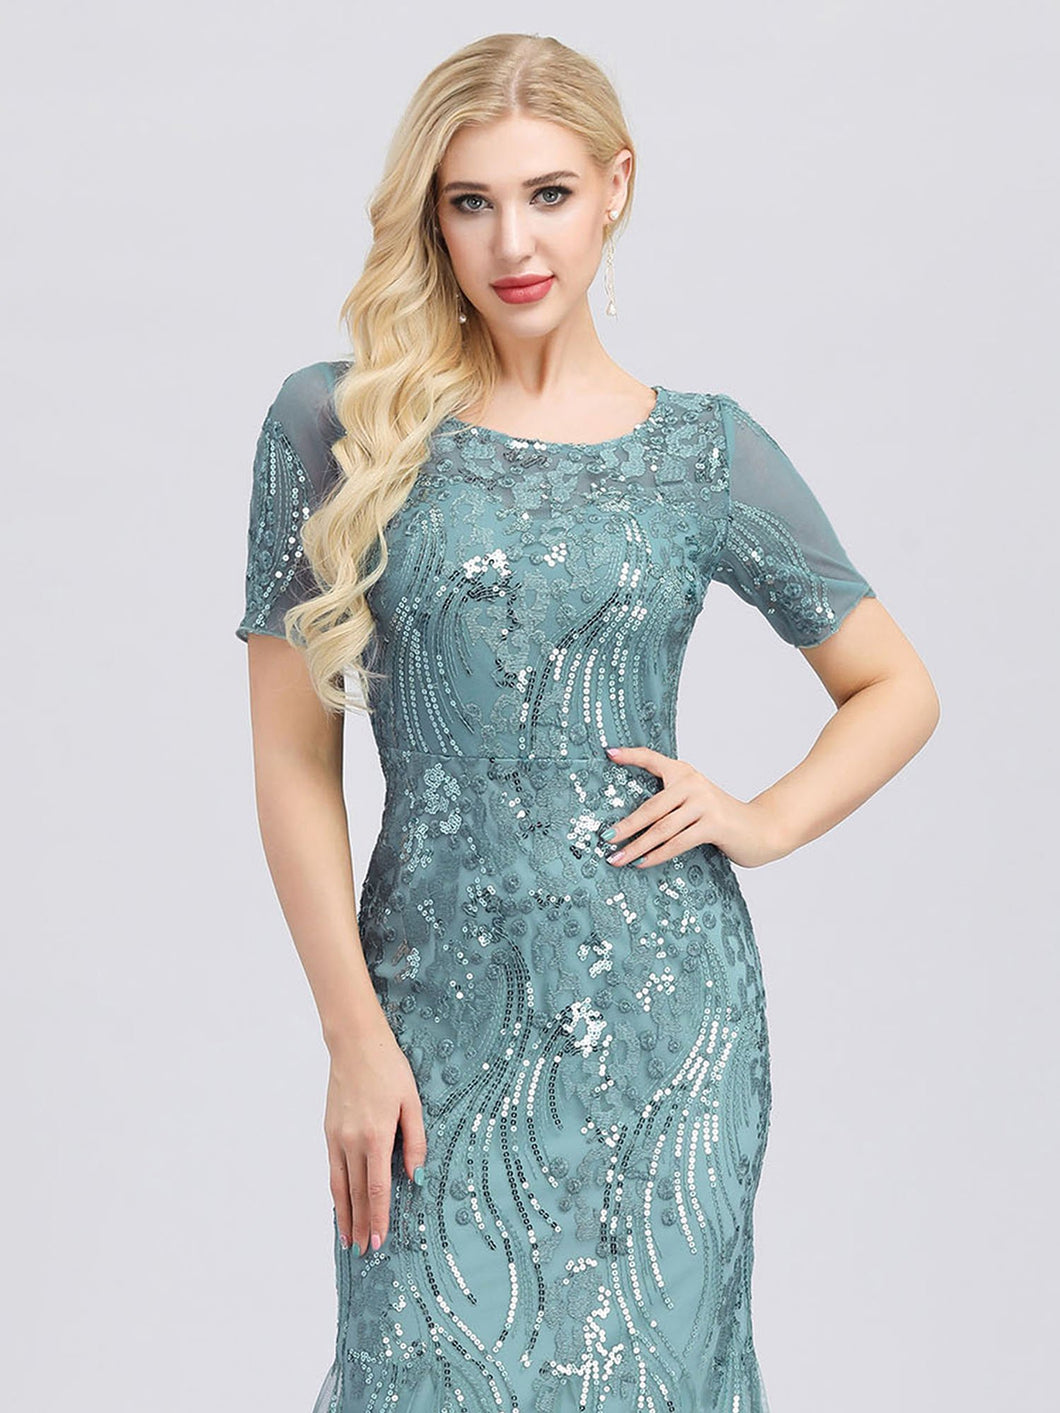 Anna Formal Dress Embroidery and Sequin embellished Mermaid Gown E7705HW-Seafoam SAMPLE IN STORE